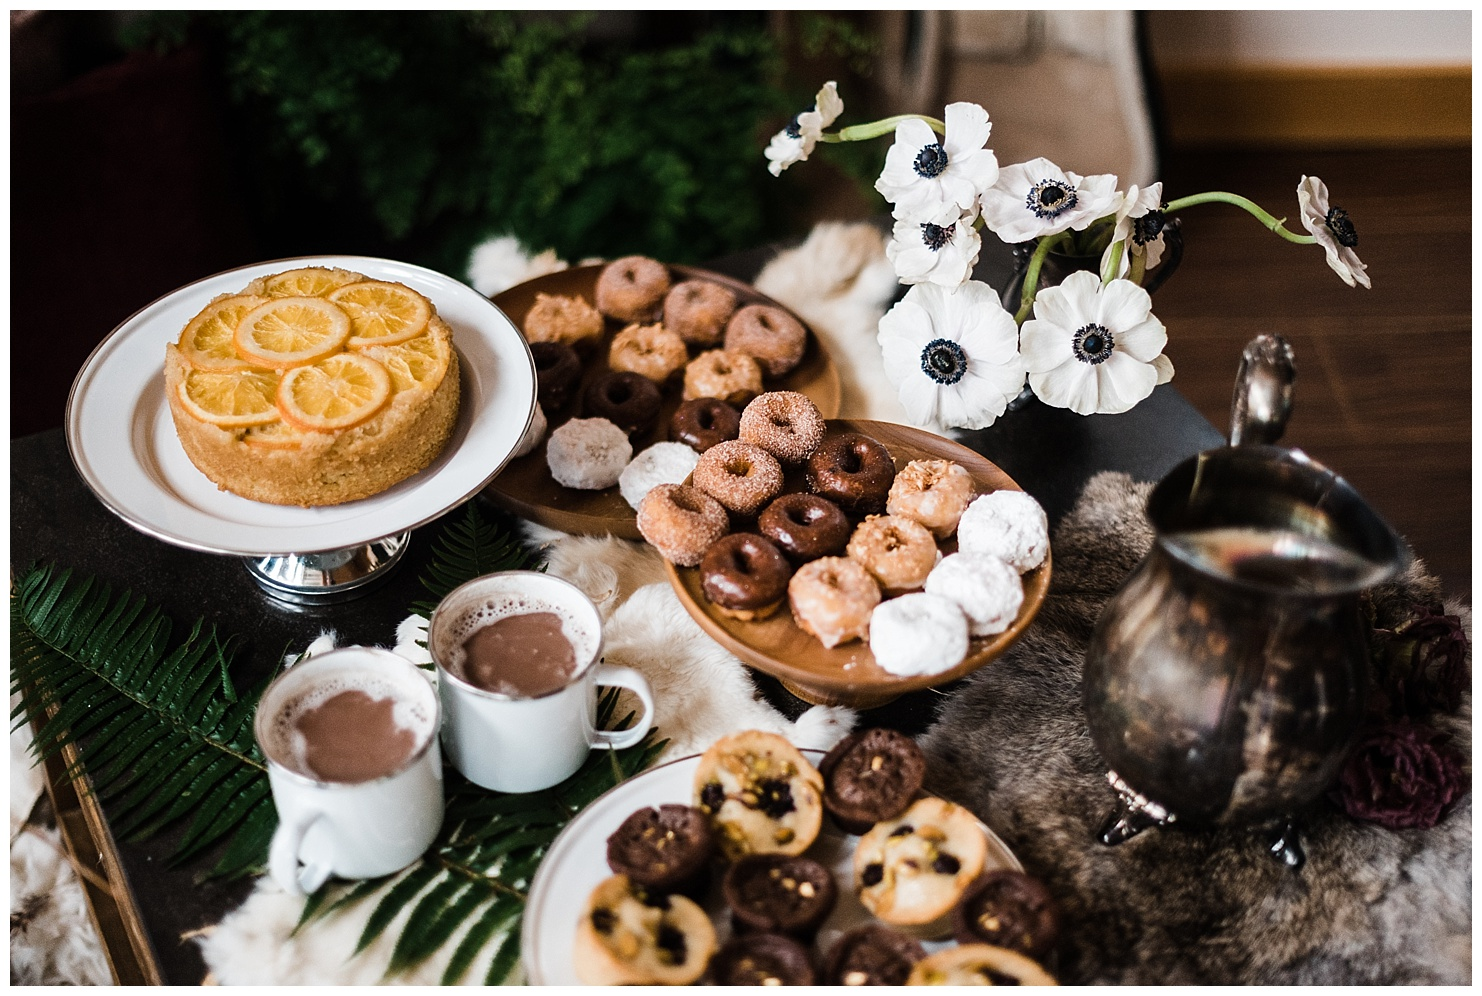 Elopement day wedding dessert spread with mini donuts and hot chocolate. Ideas for elopement dinners and deserts. Image by Forthright Photo.